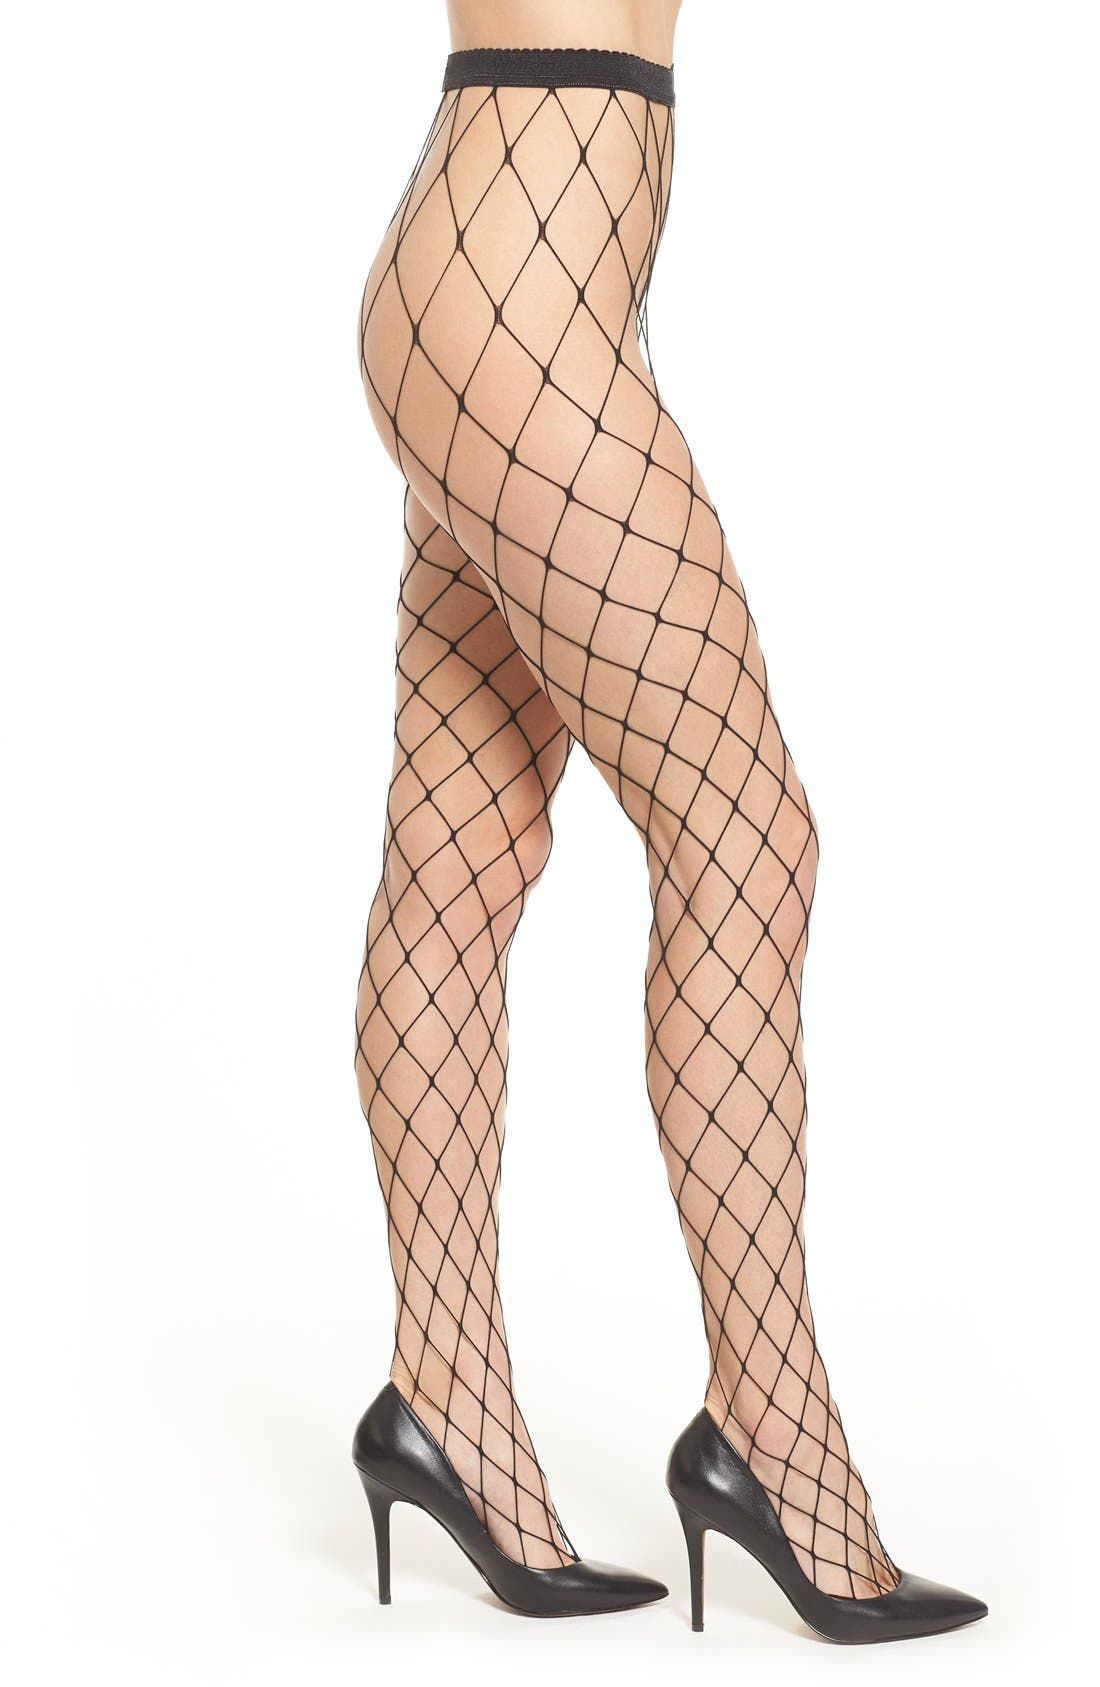 WOLFORD Kaylee Fishnet Tights